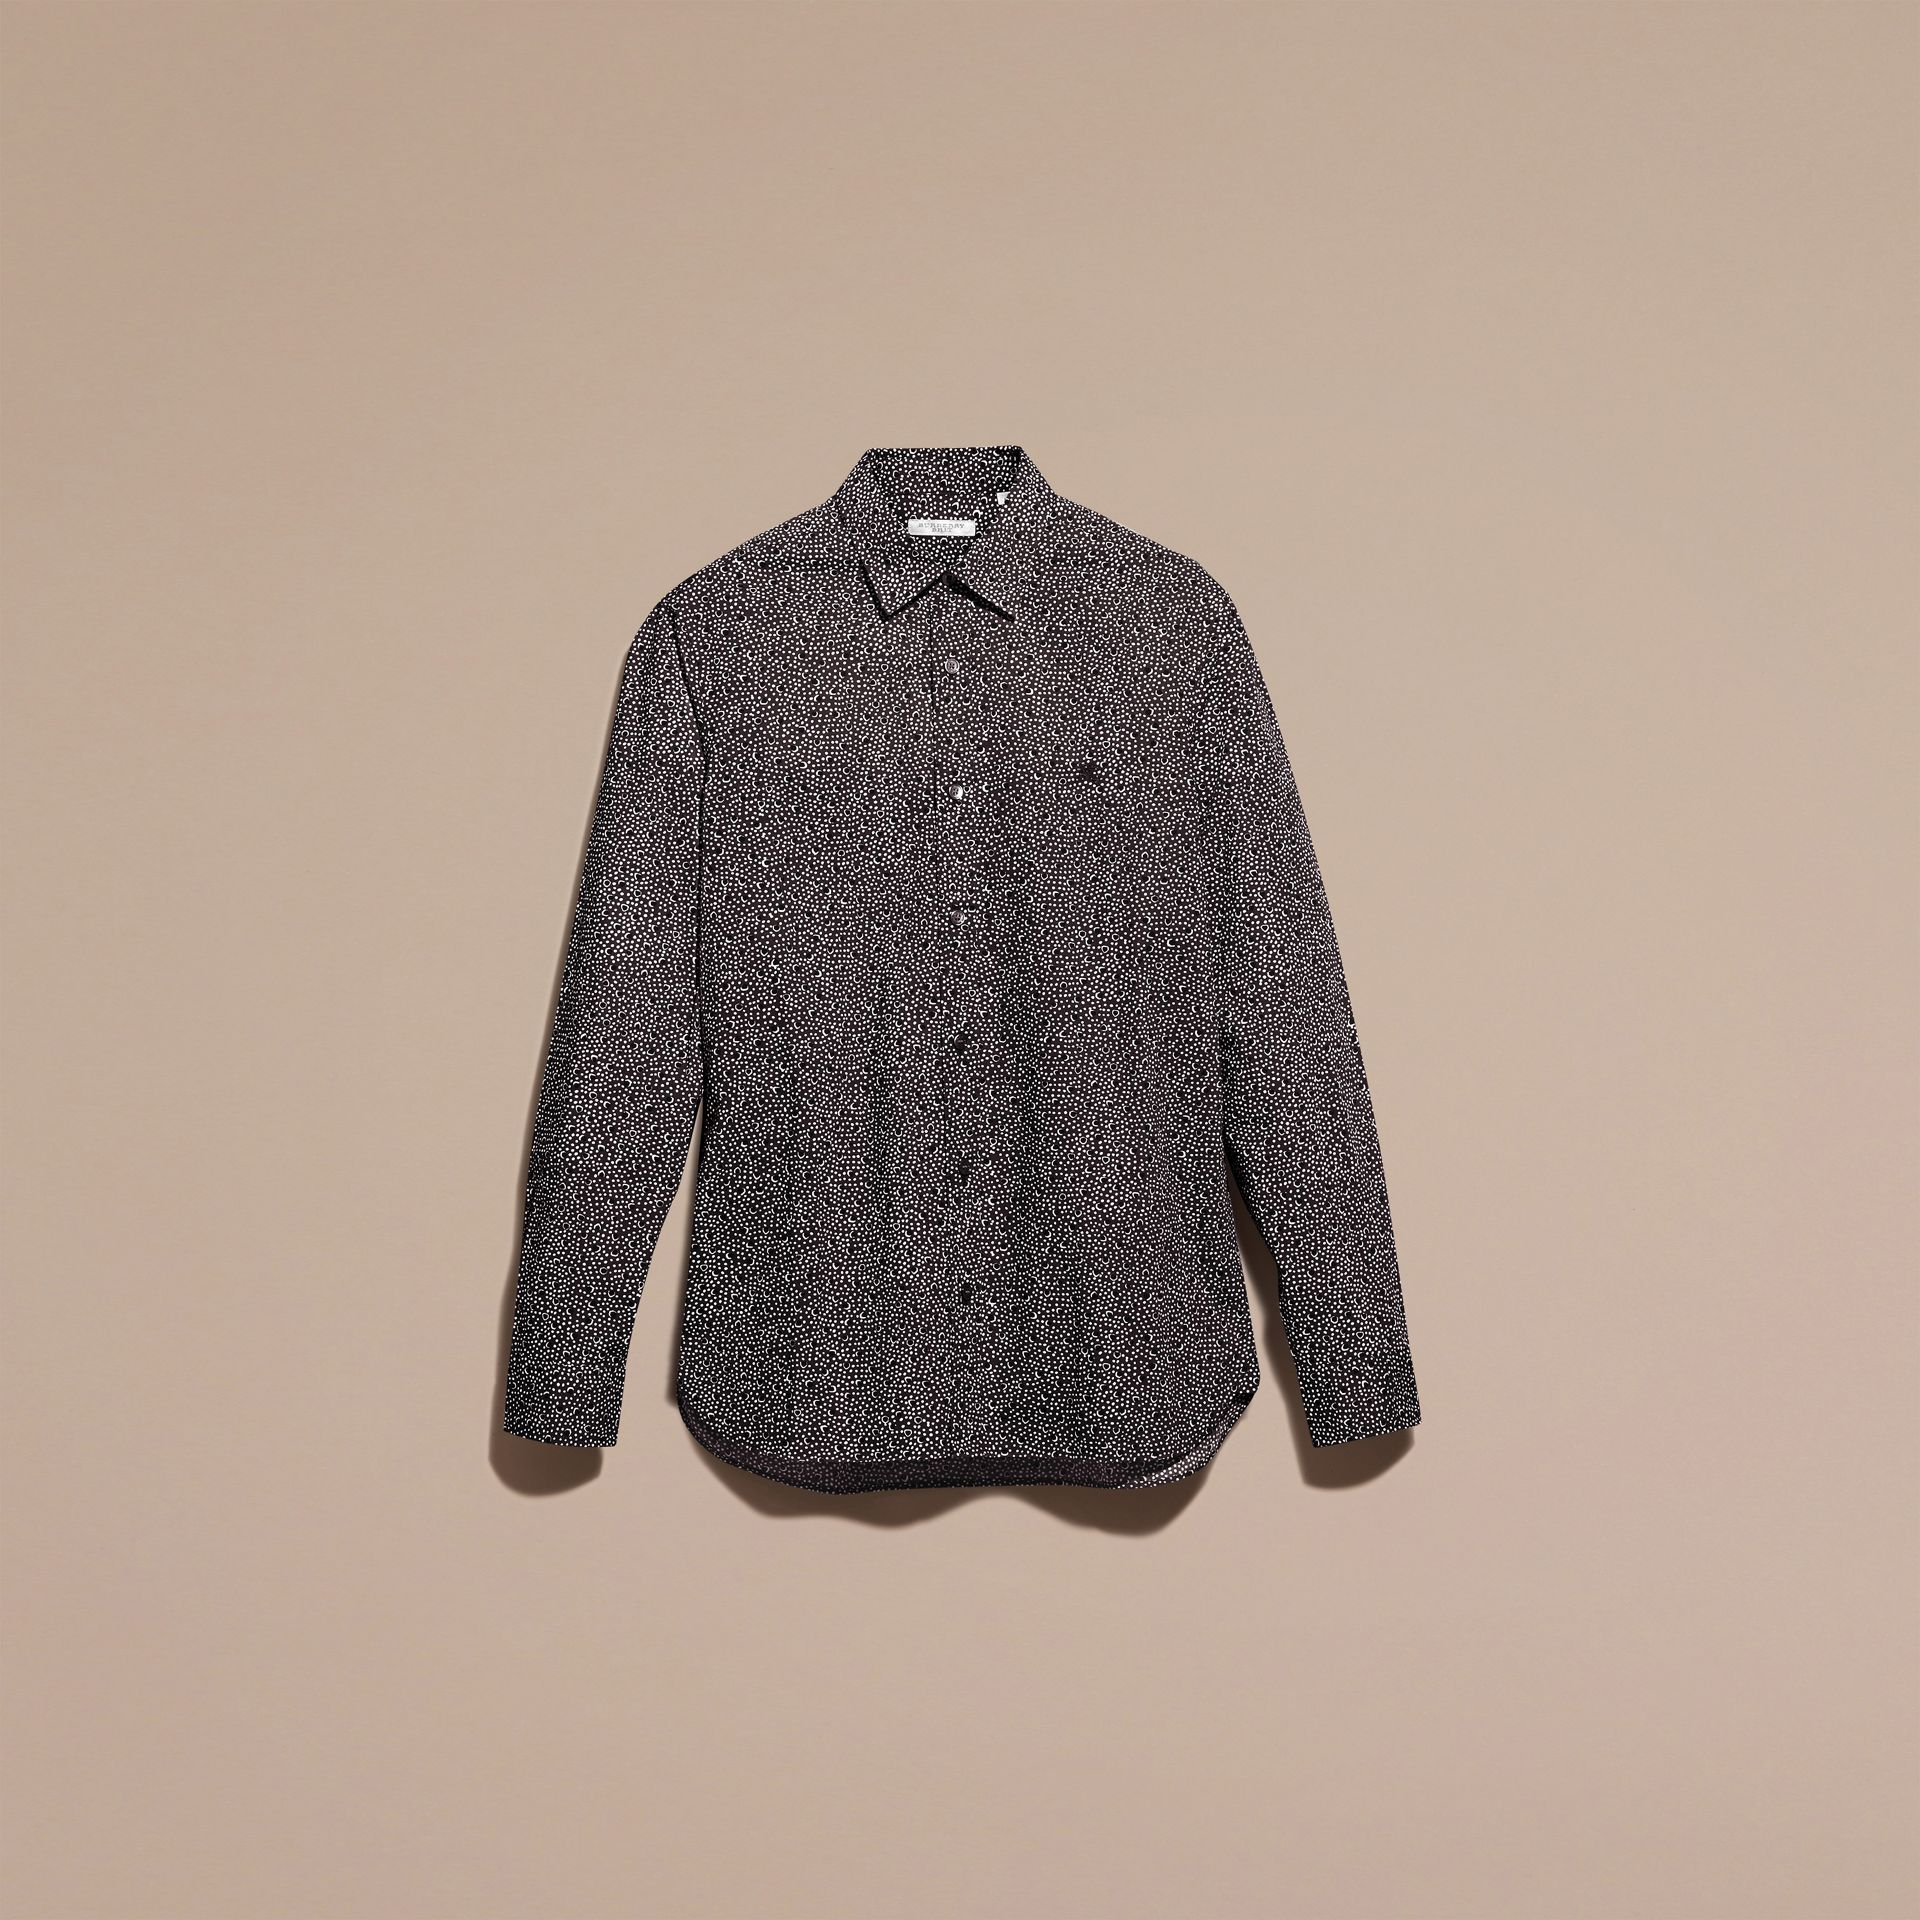 Navy Painterly Spot Print Cotton Shirt Navy - gallery image 3